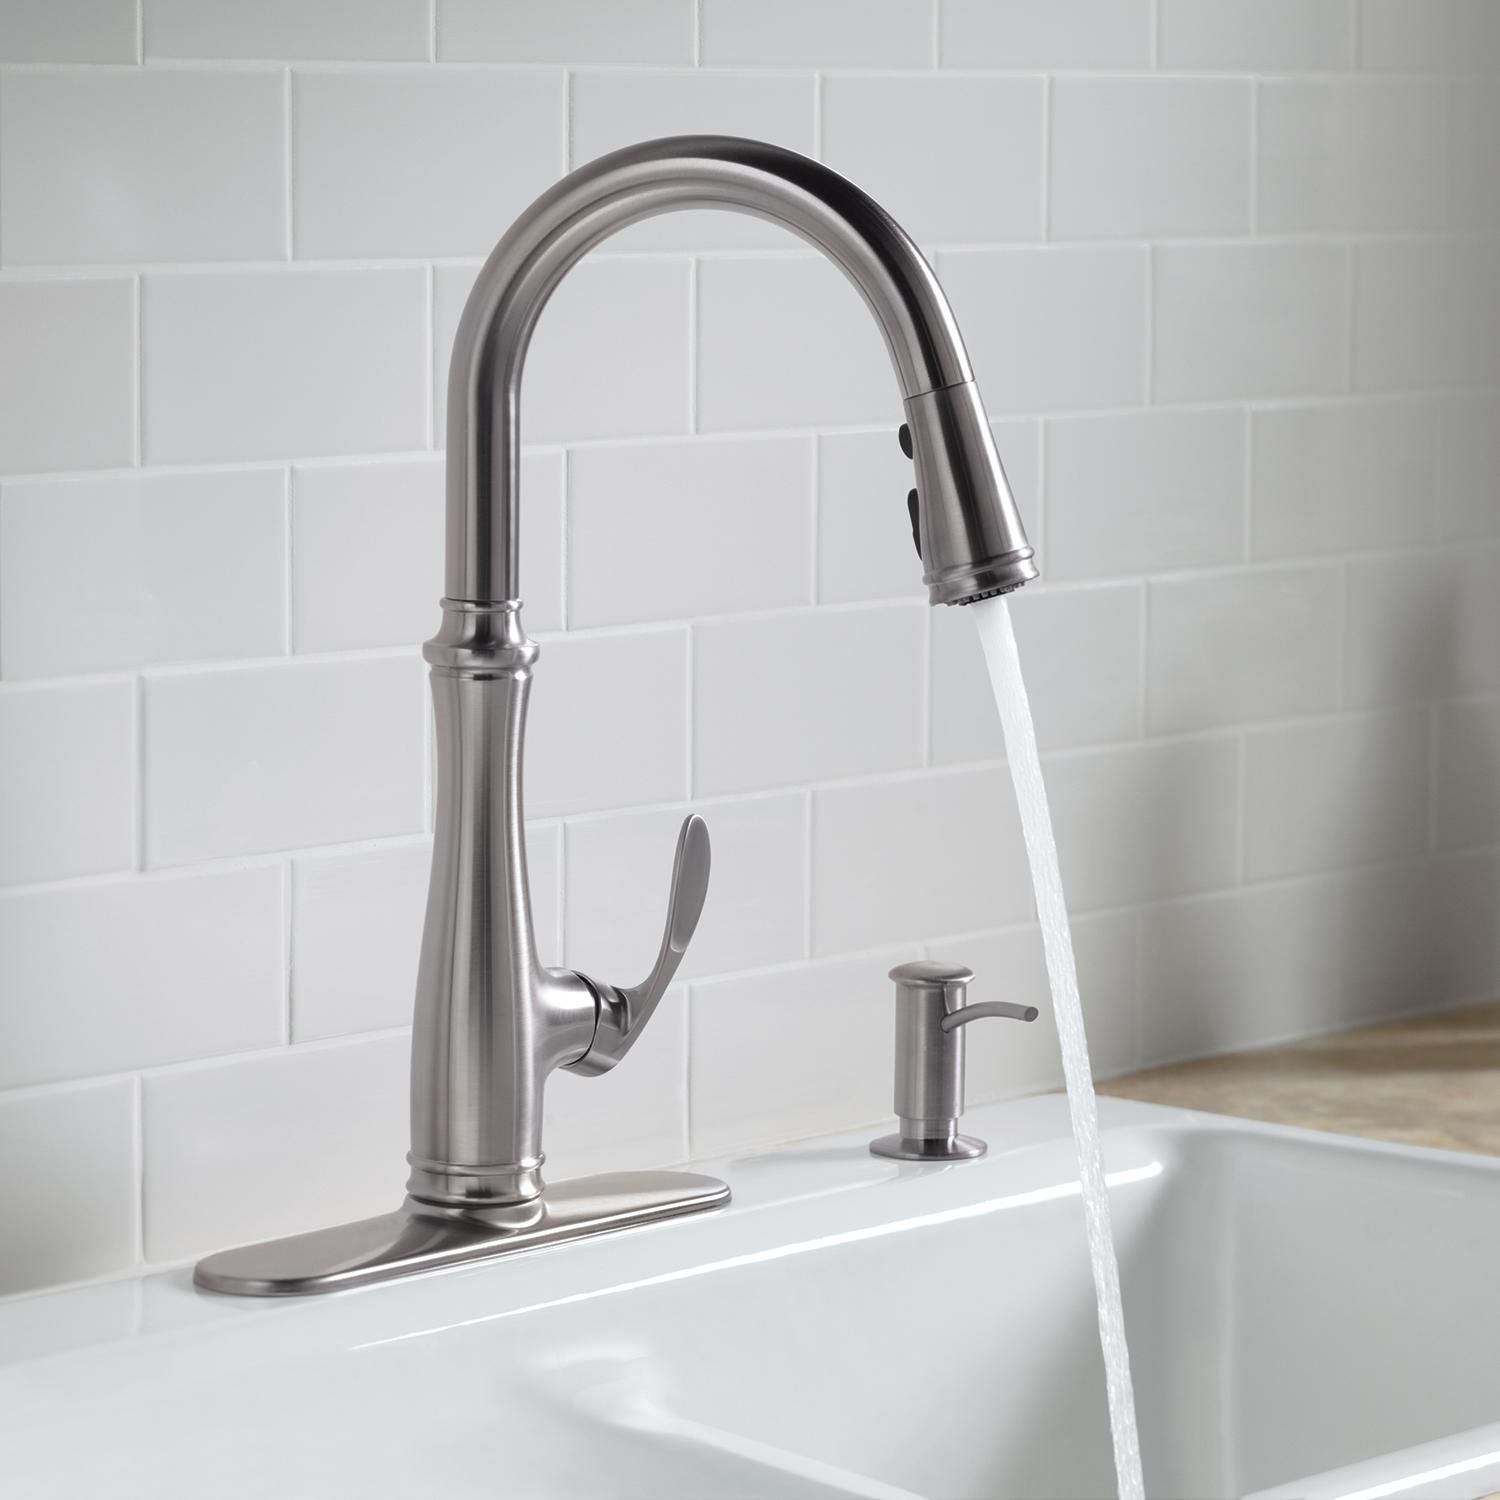 Kohler K-560-VS Bellera Pull-Down Kitchen Faucet, Vibrant Stainless ...